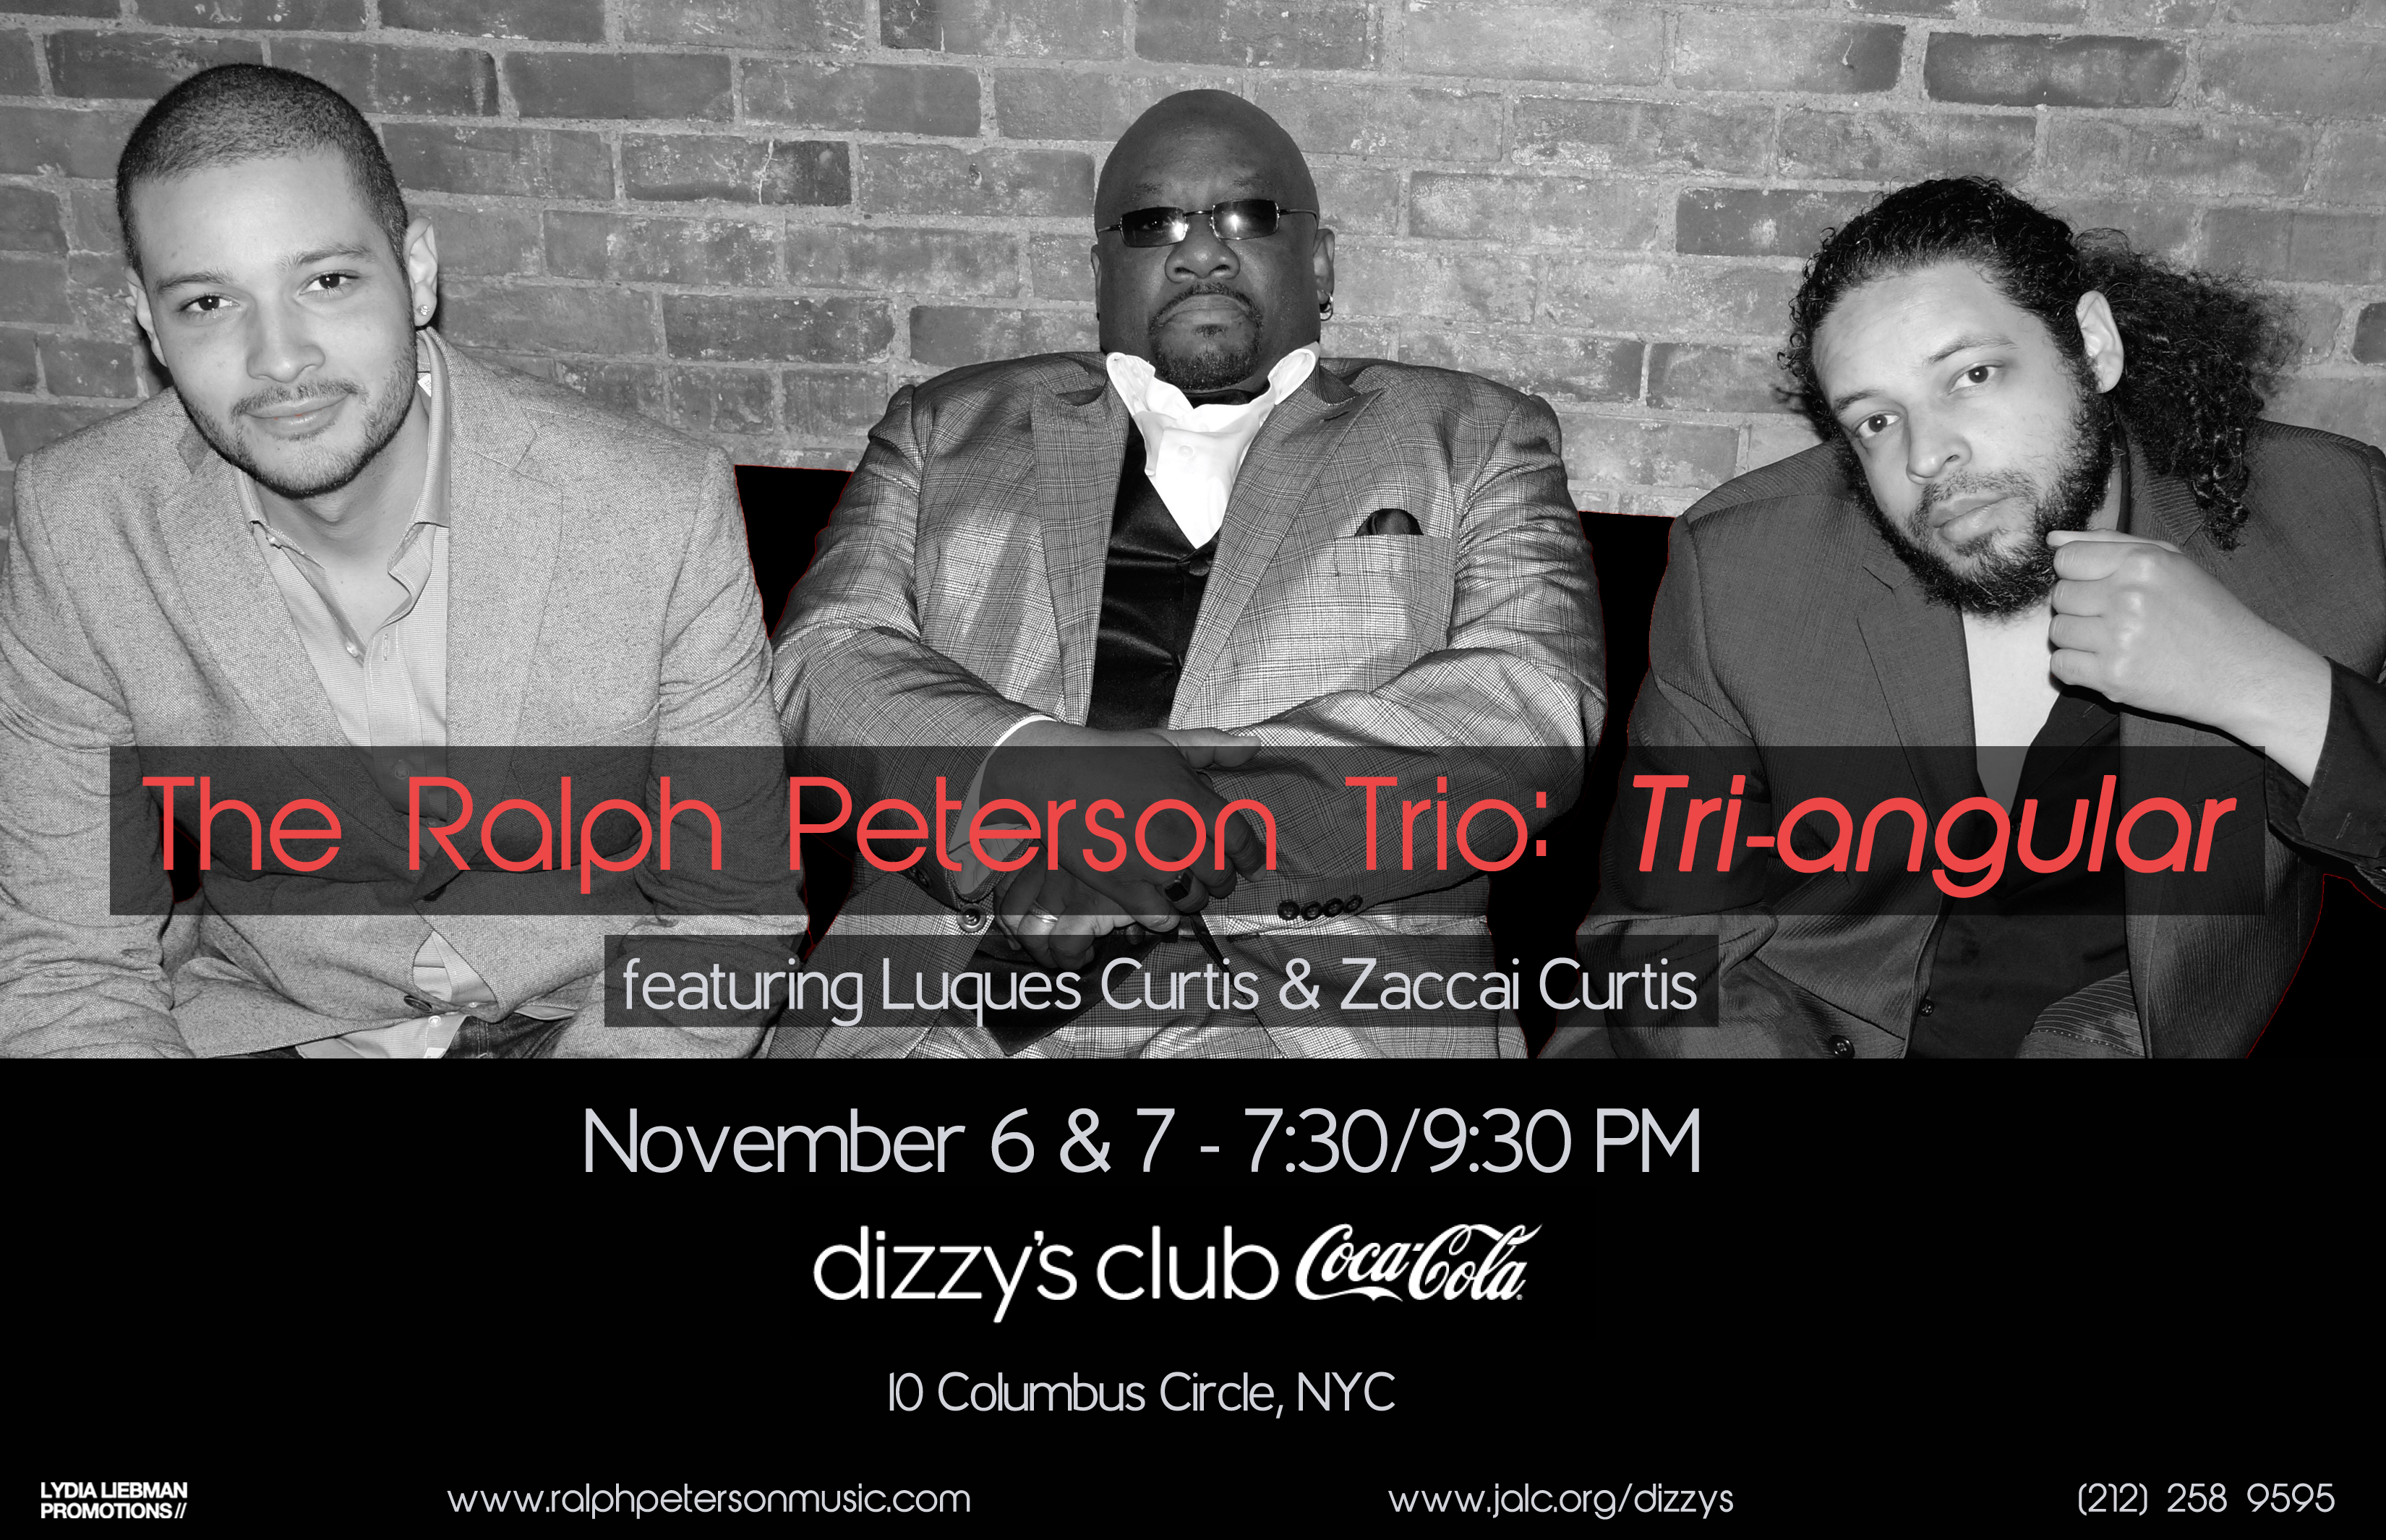 The Ralph Peterson Trio, featuring The Curtis Brothers to perform at Jazz at Lincoln Center November 6 & 7